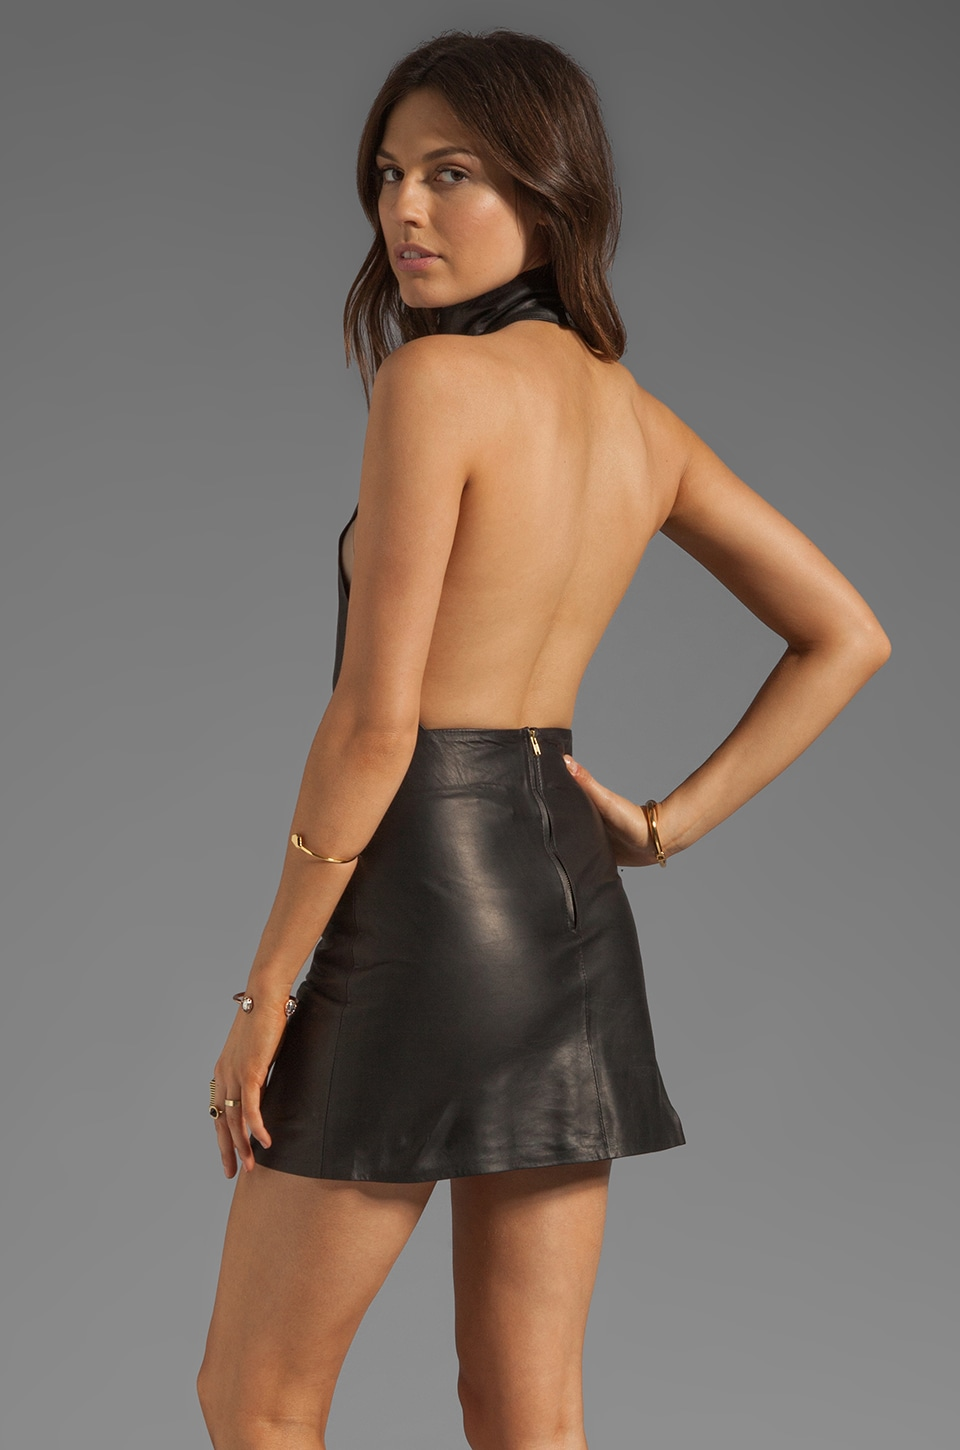 Friend of Mine Knicks Leather Dress in Black